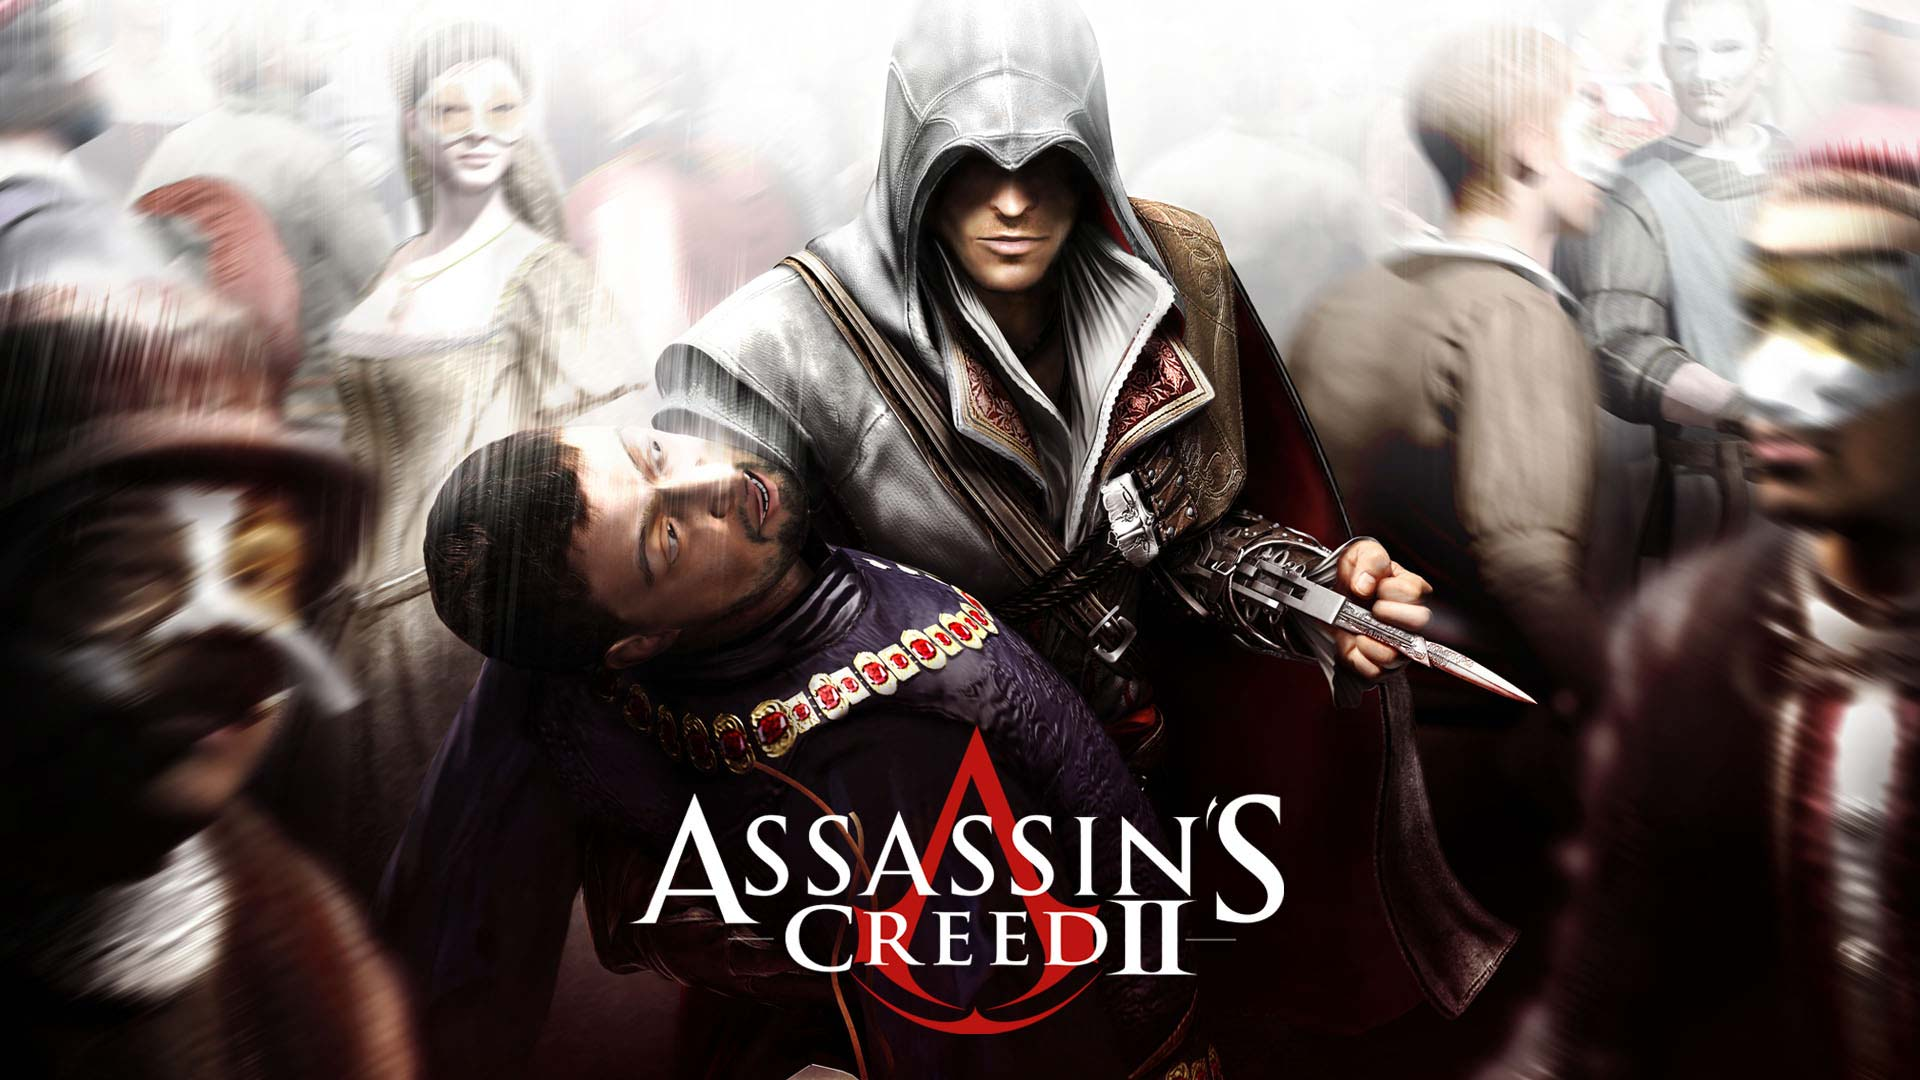 Turismo y videojuegos: Assassin's Creed II